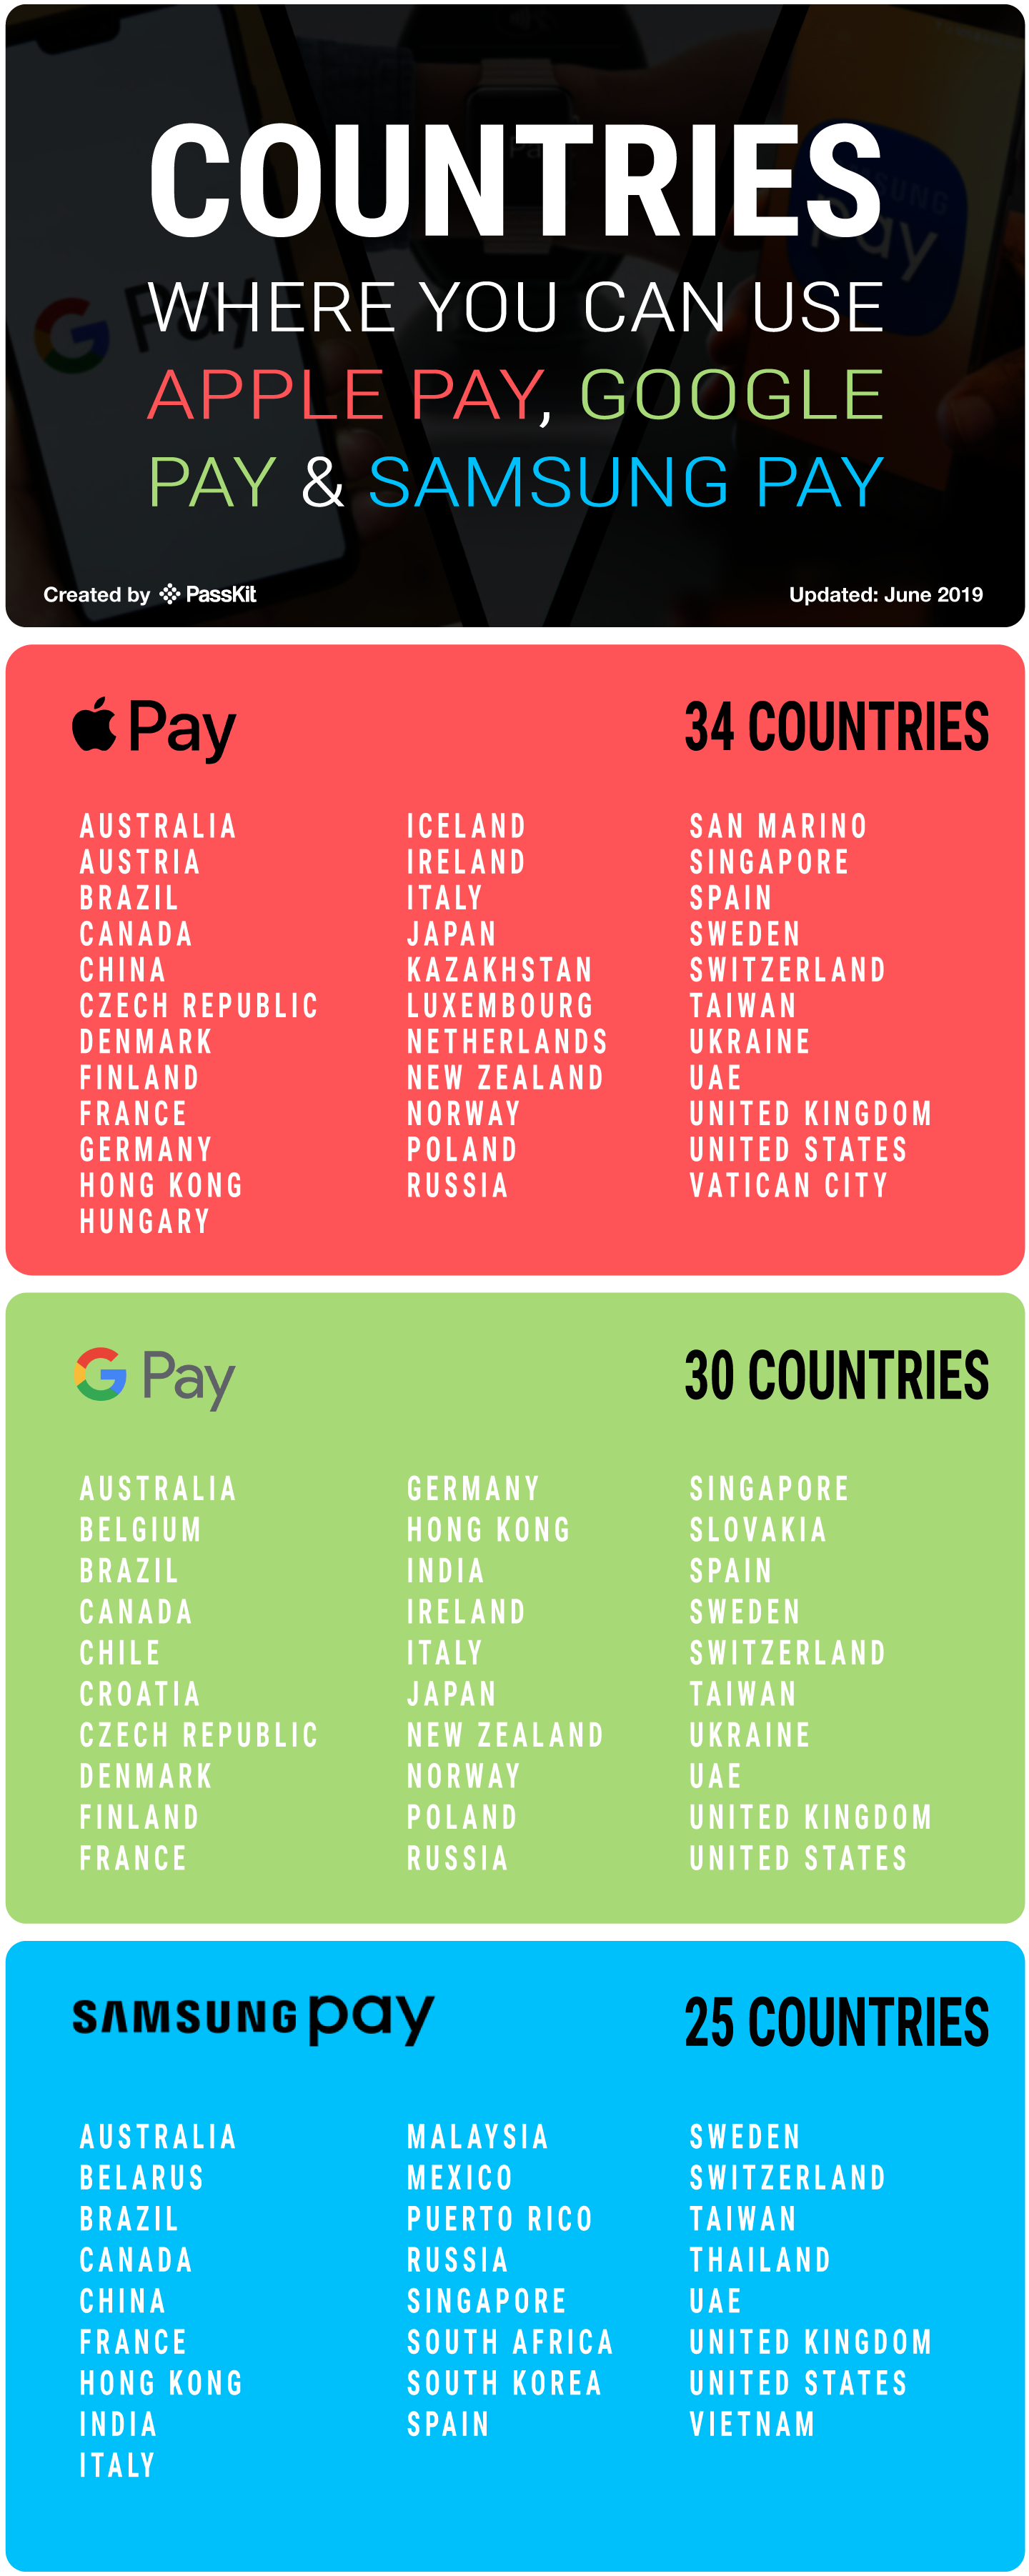 Countries where you can use Apple Pay, Google Pay and Samsung Pay